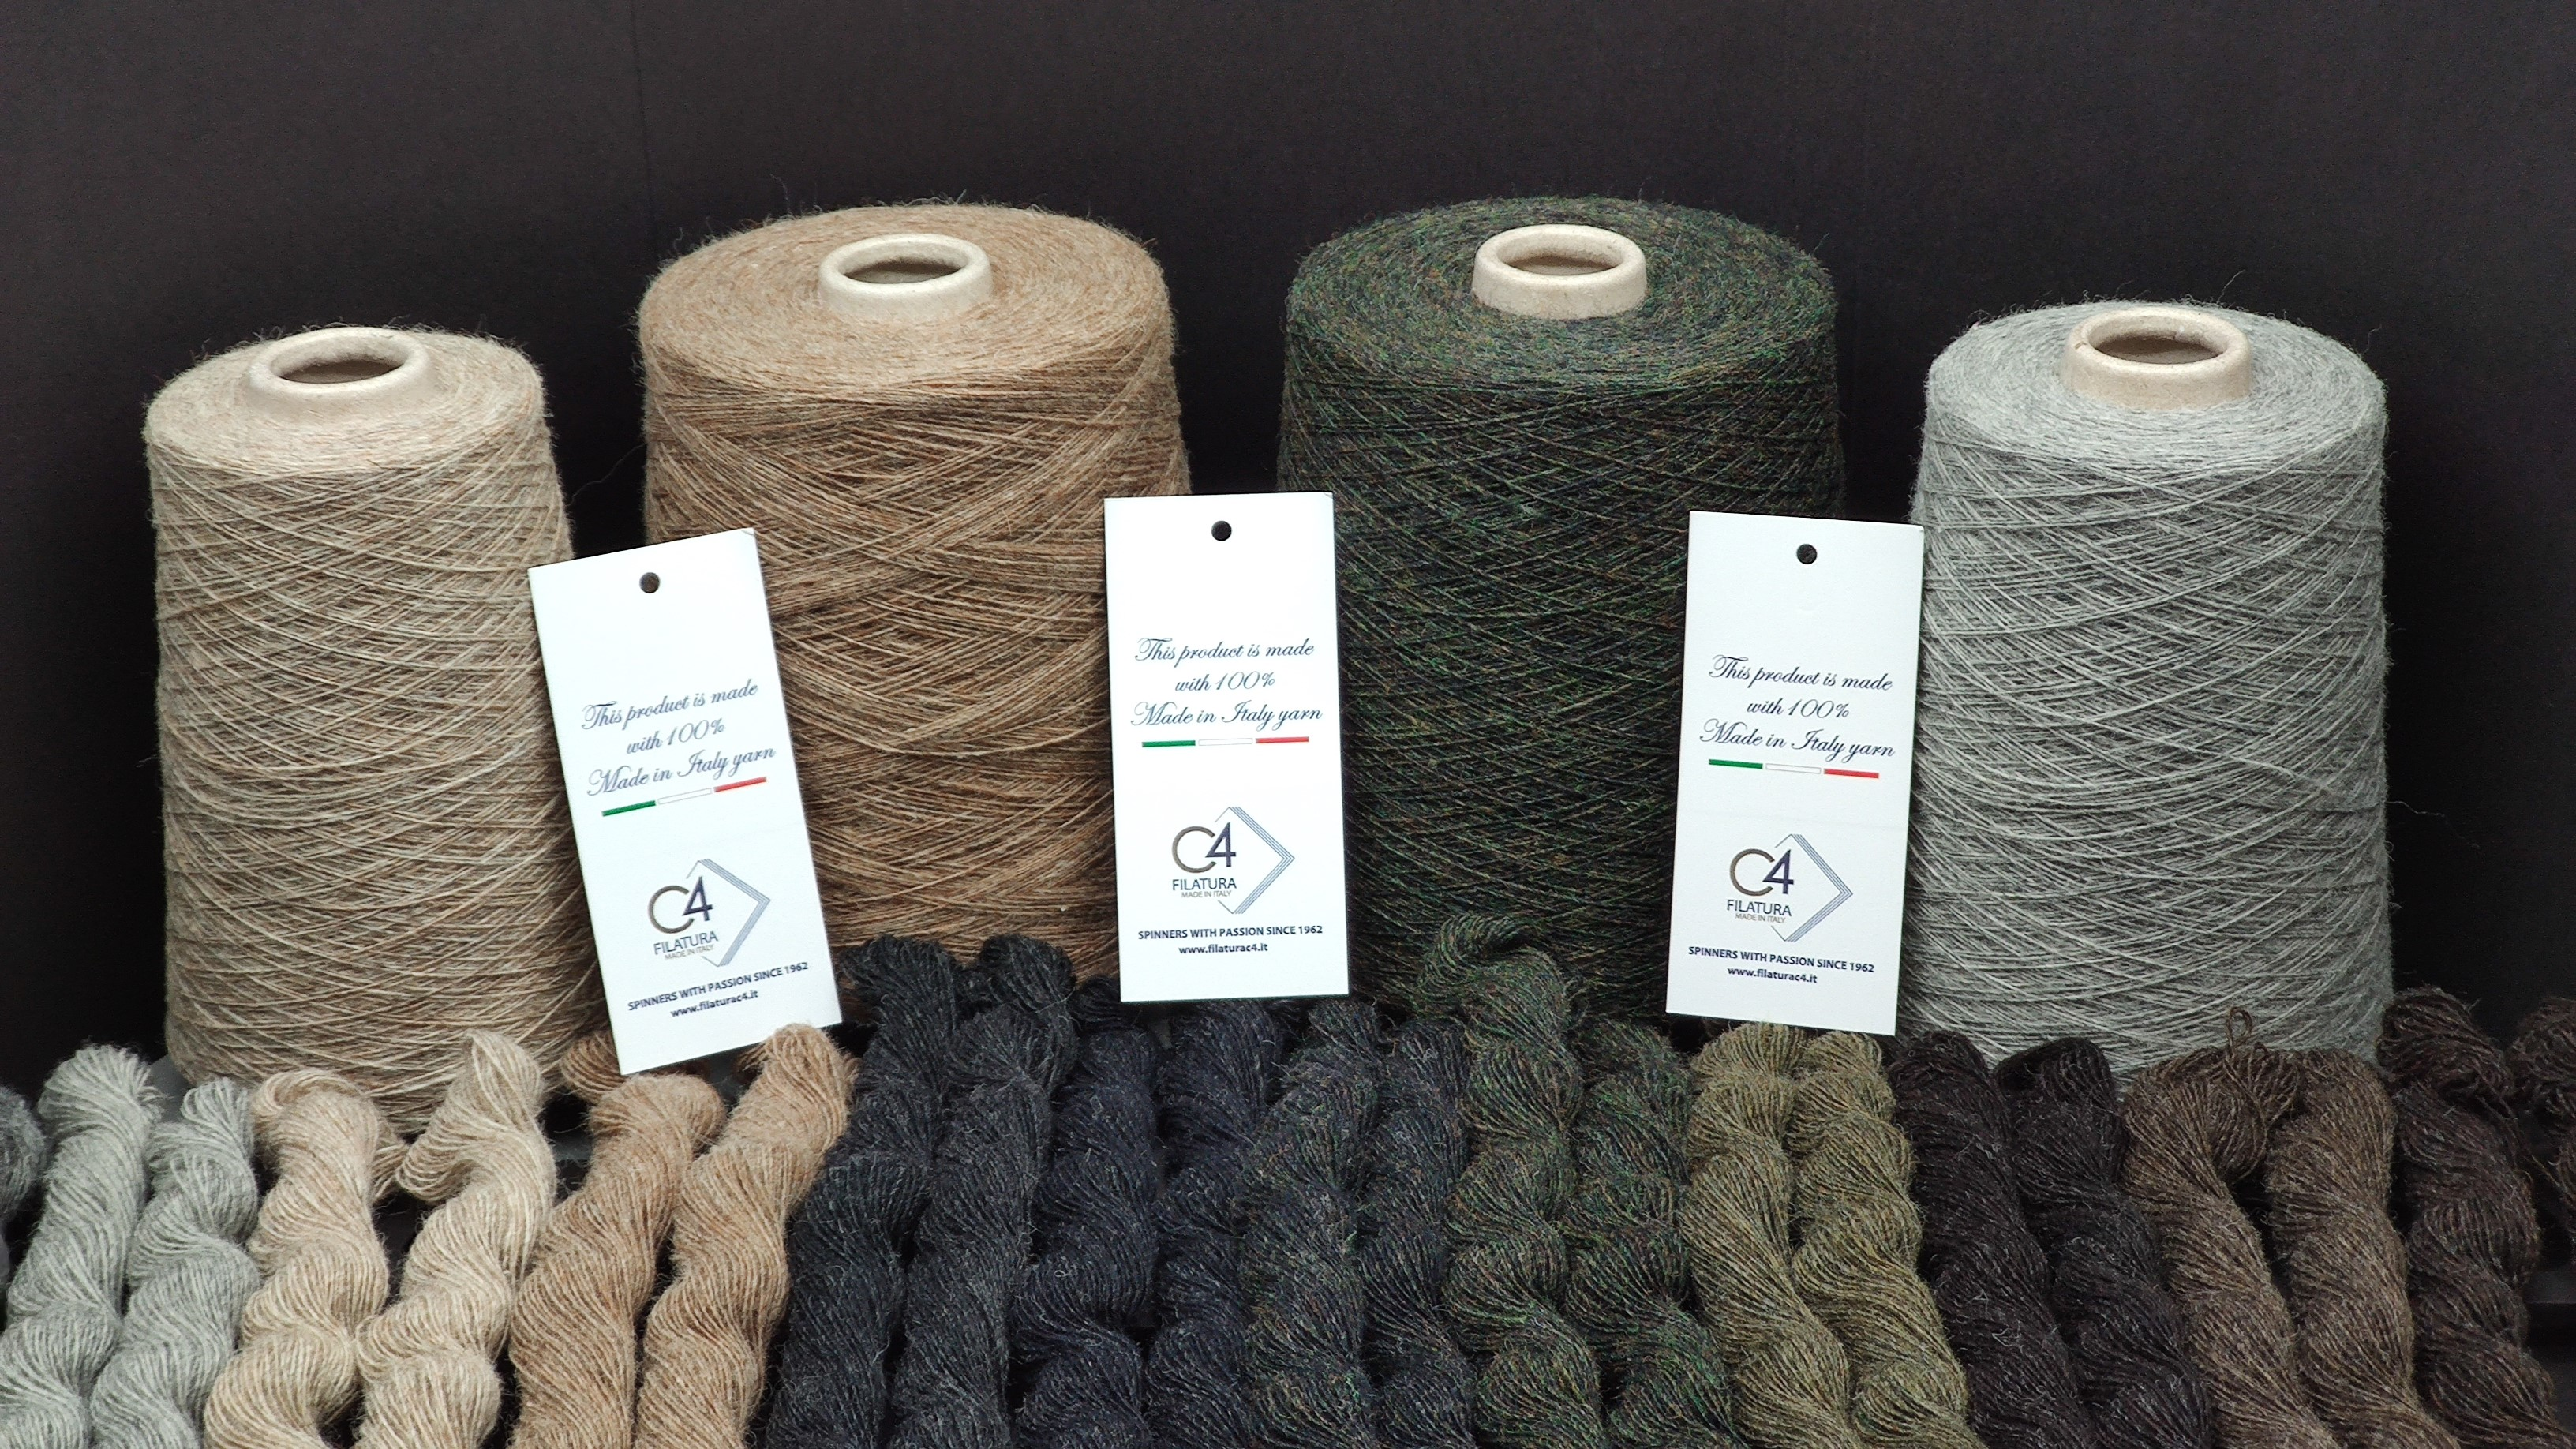 Filatura C4: New Yarns From Recycled Wool